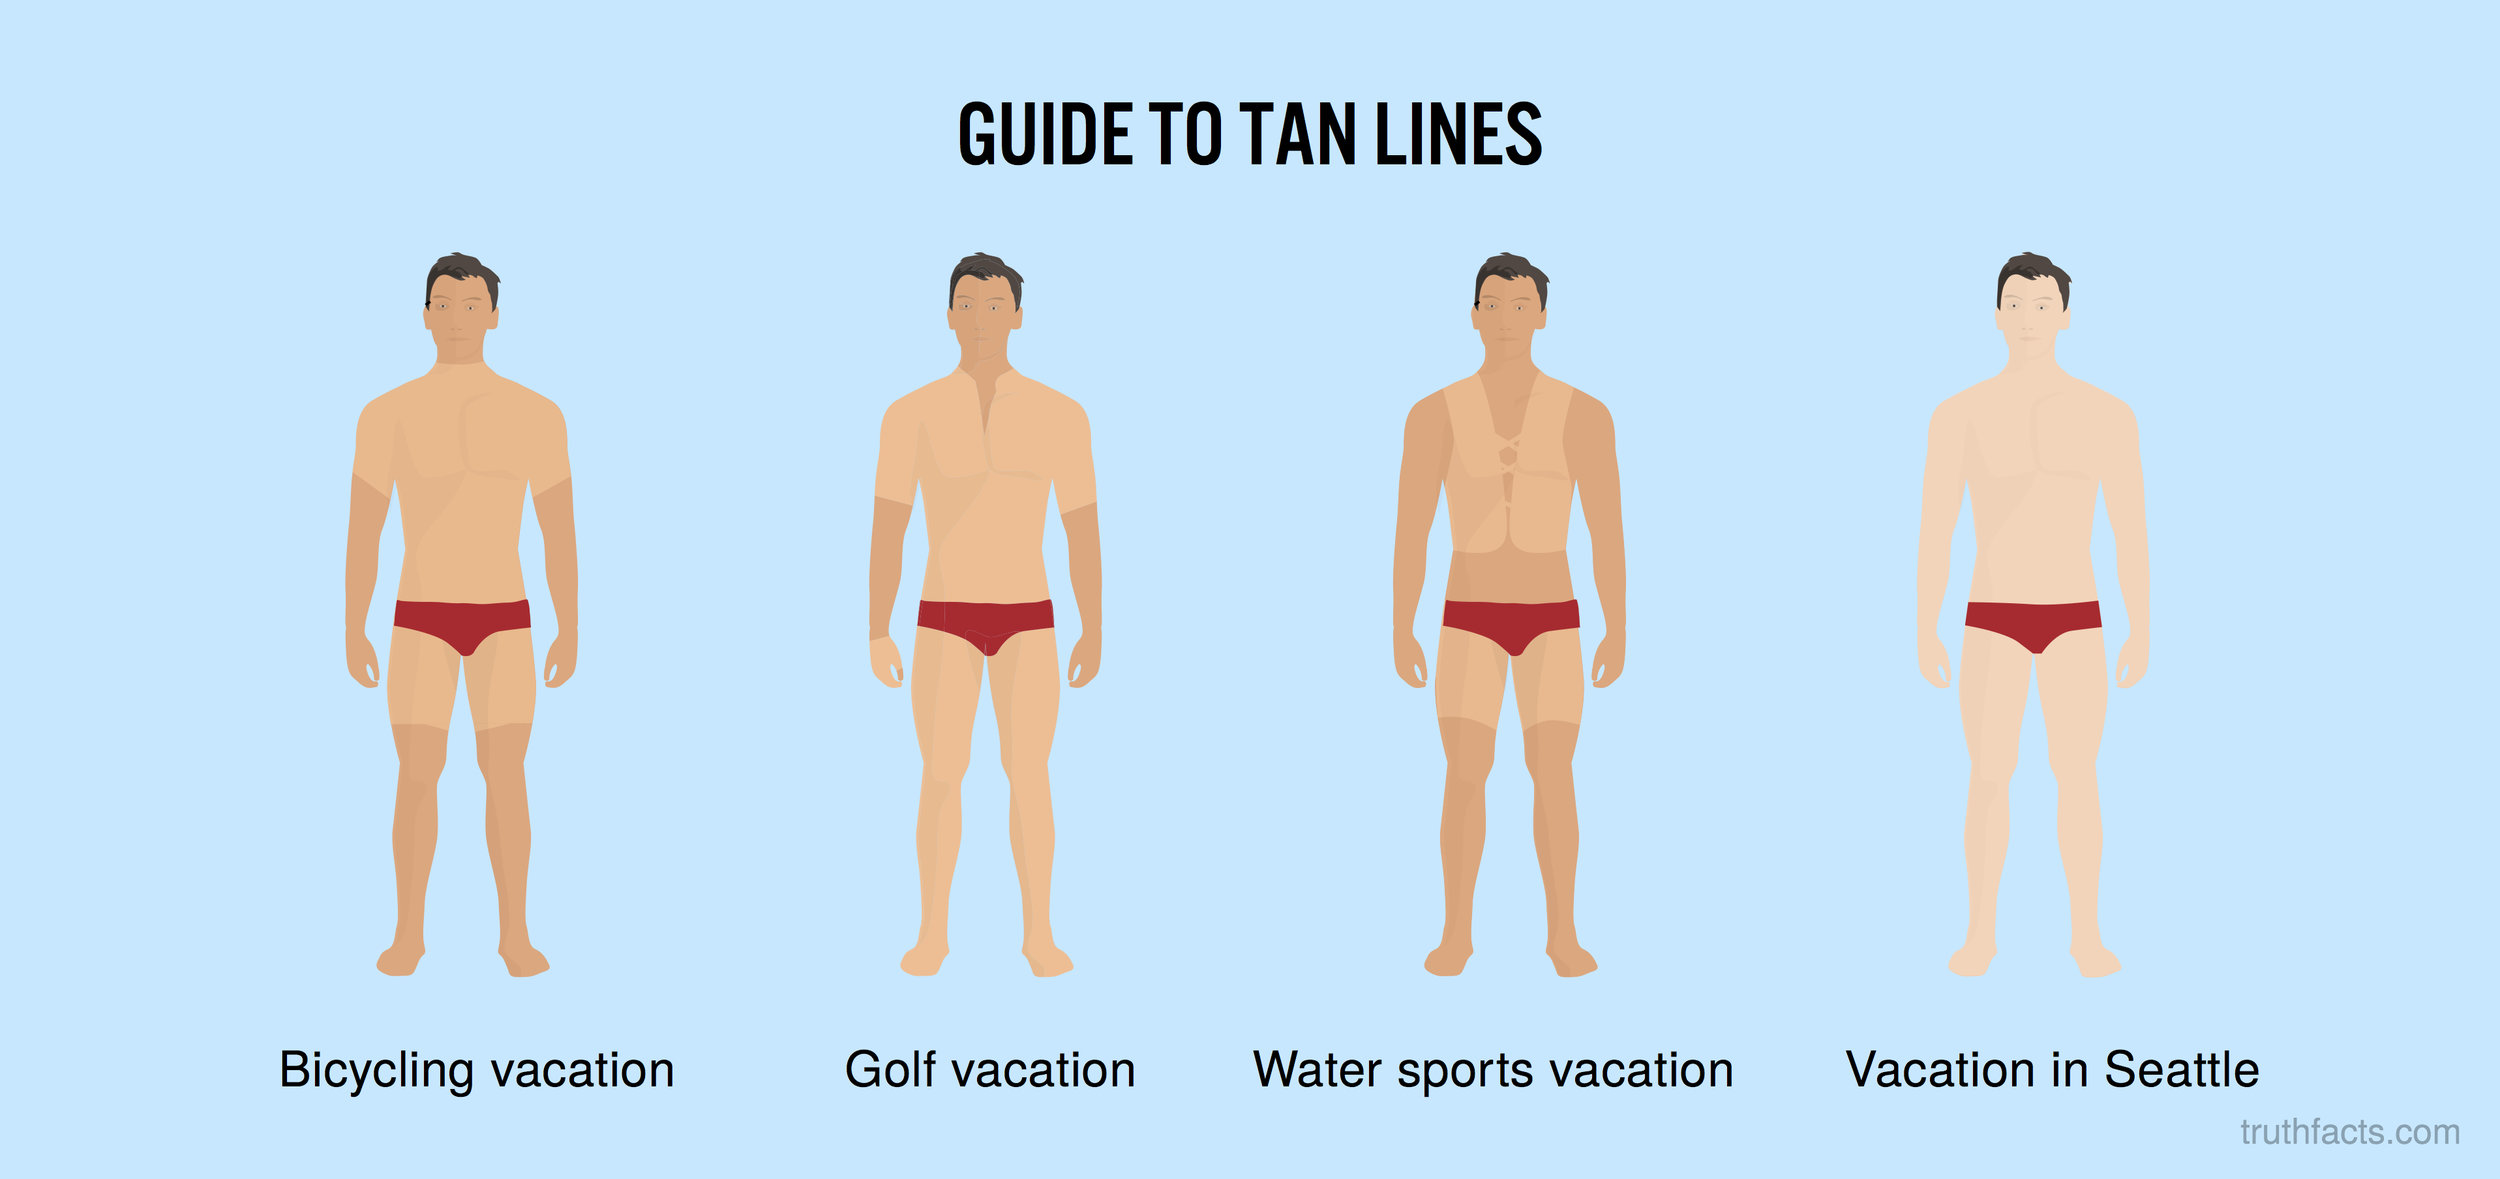 Guide to tan lines